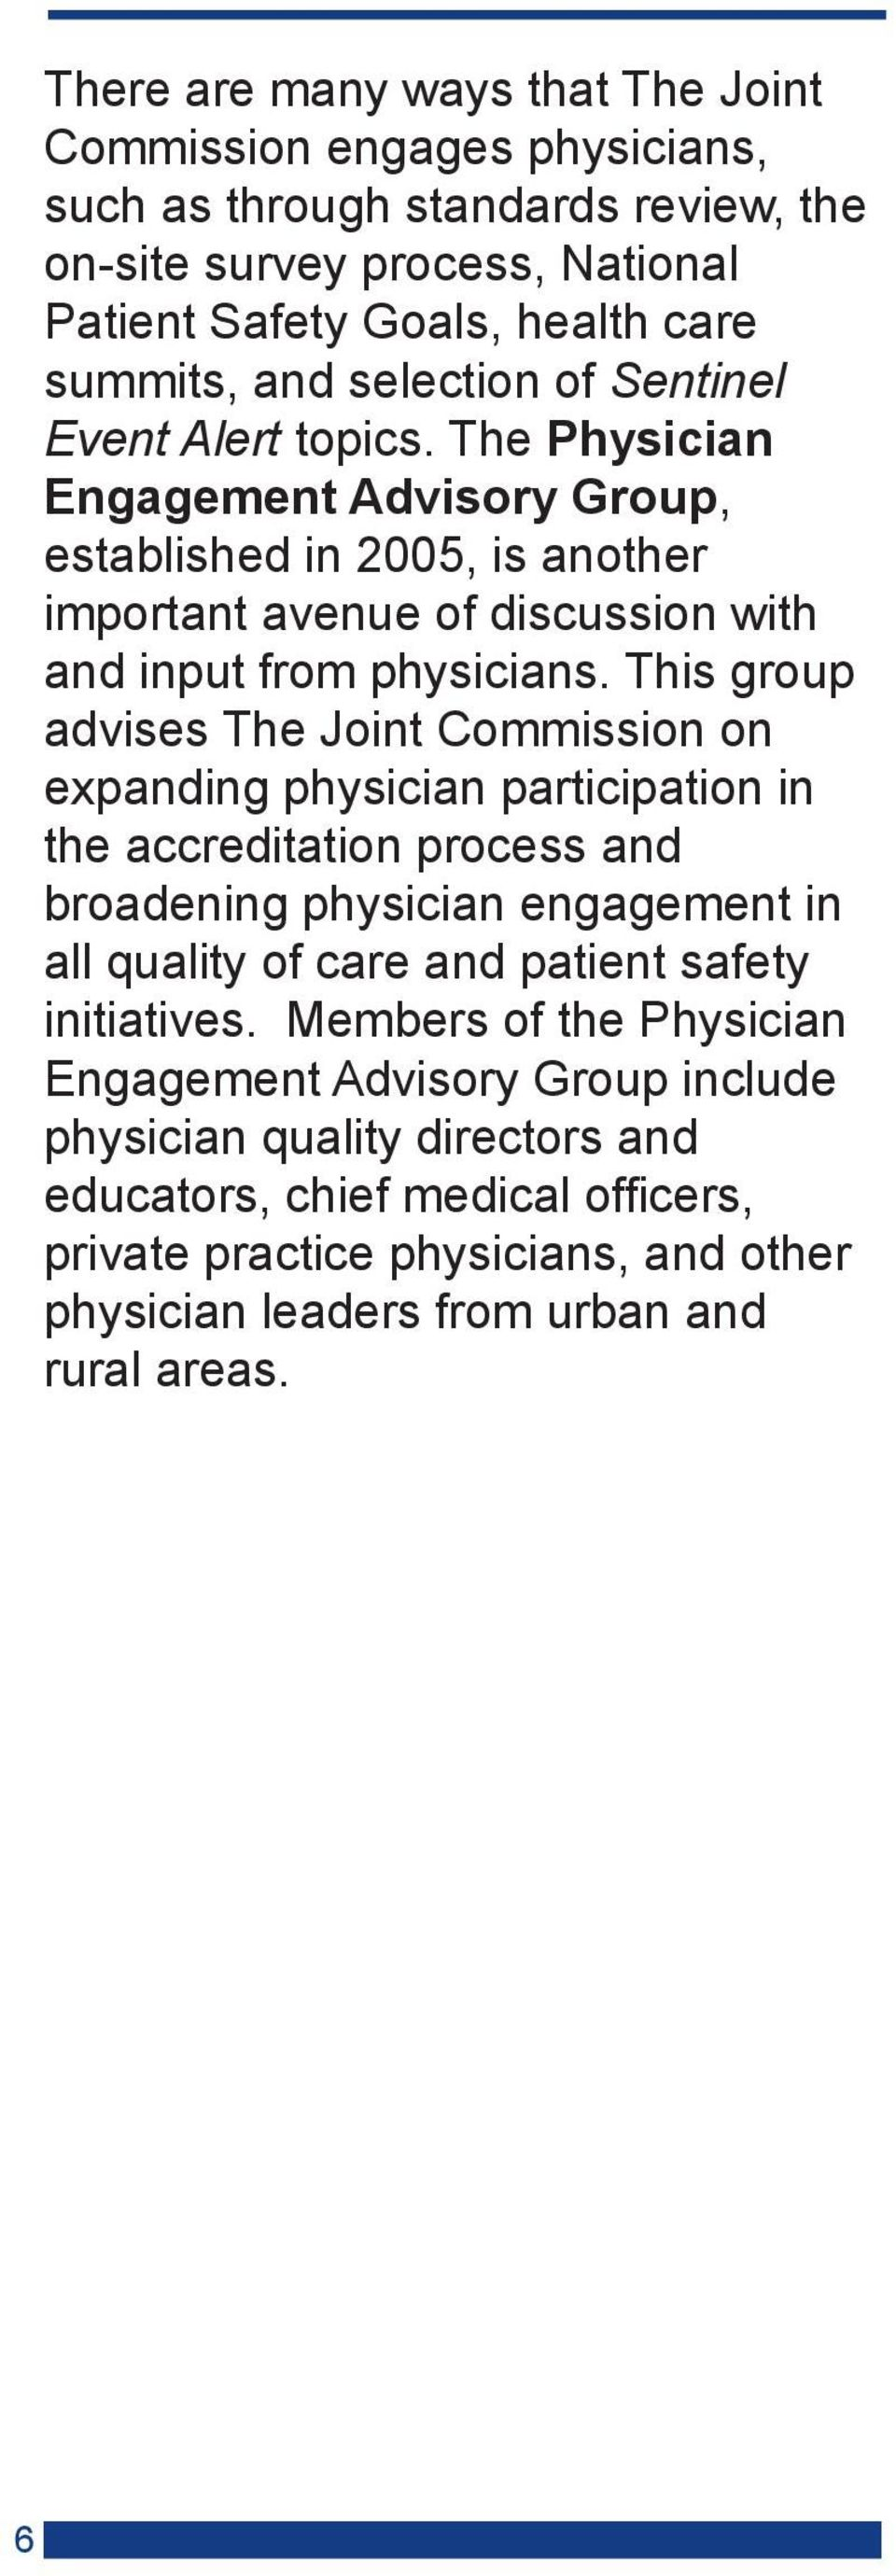 This group advises The Joint Commission on expanding physician participation in the accreditation process and broadening physician engagement in all quality of care and patient safety